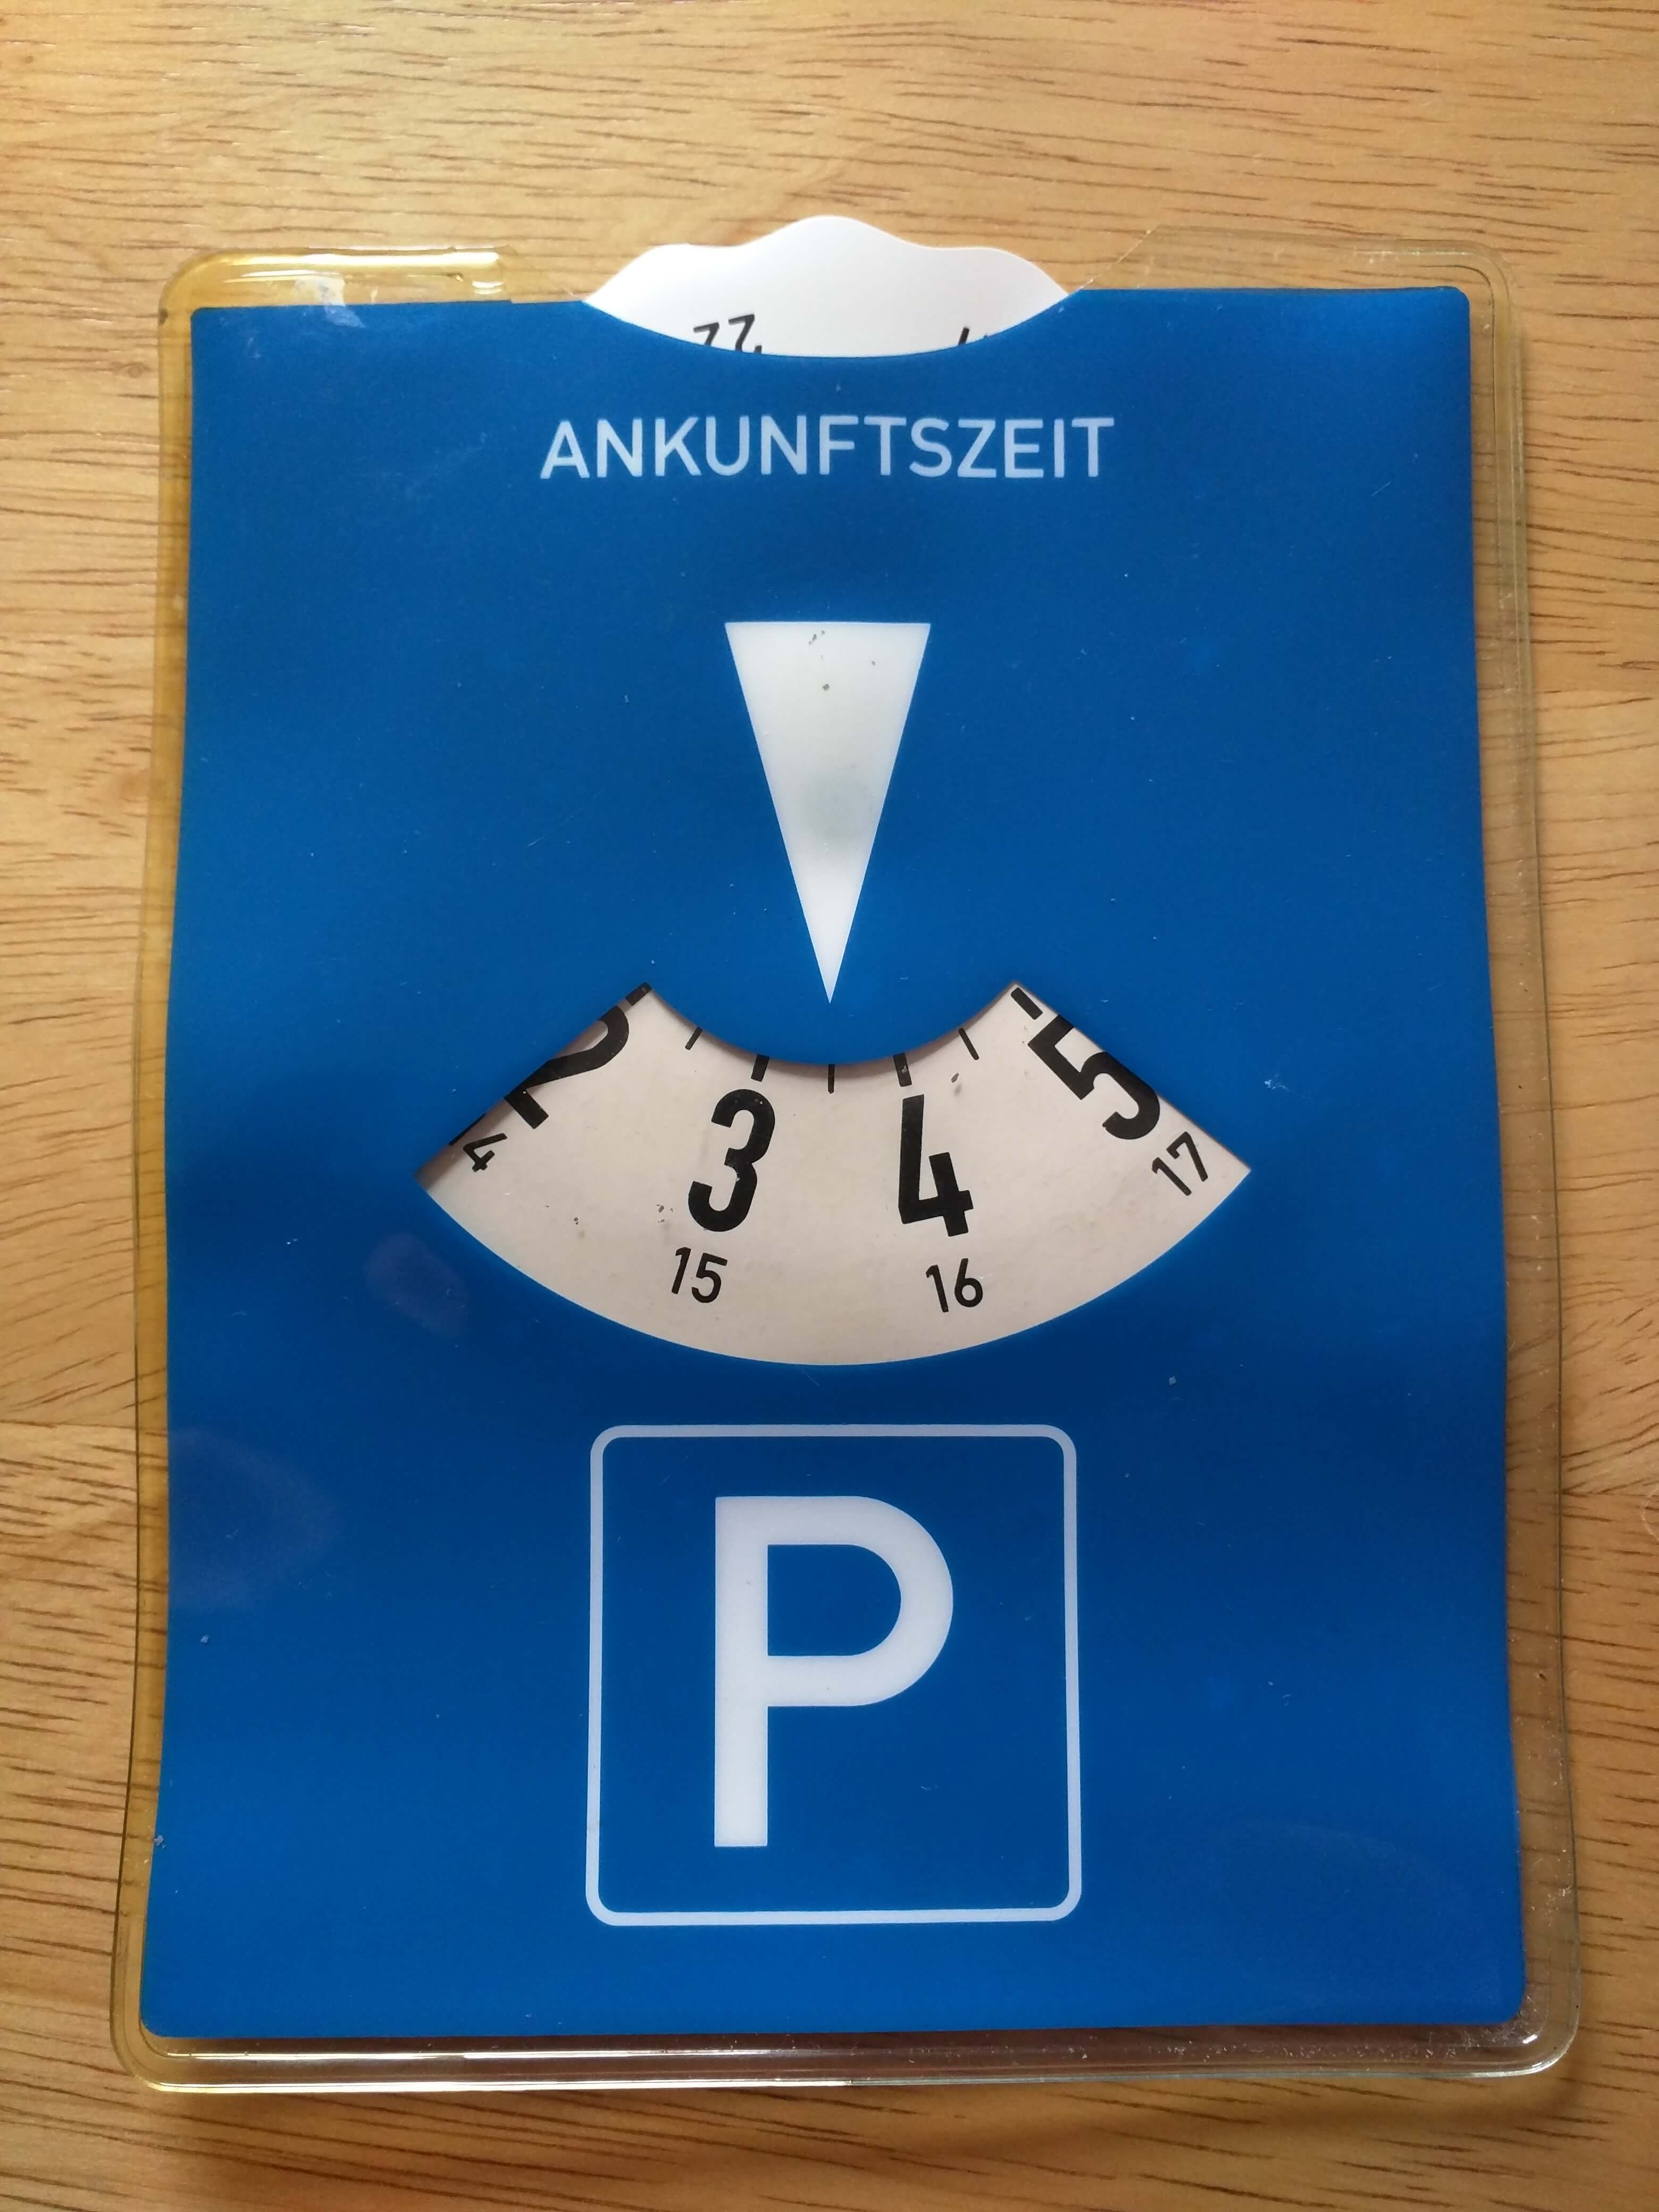 How to use a German parking disc - Angelika's German Tuition